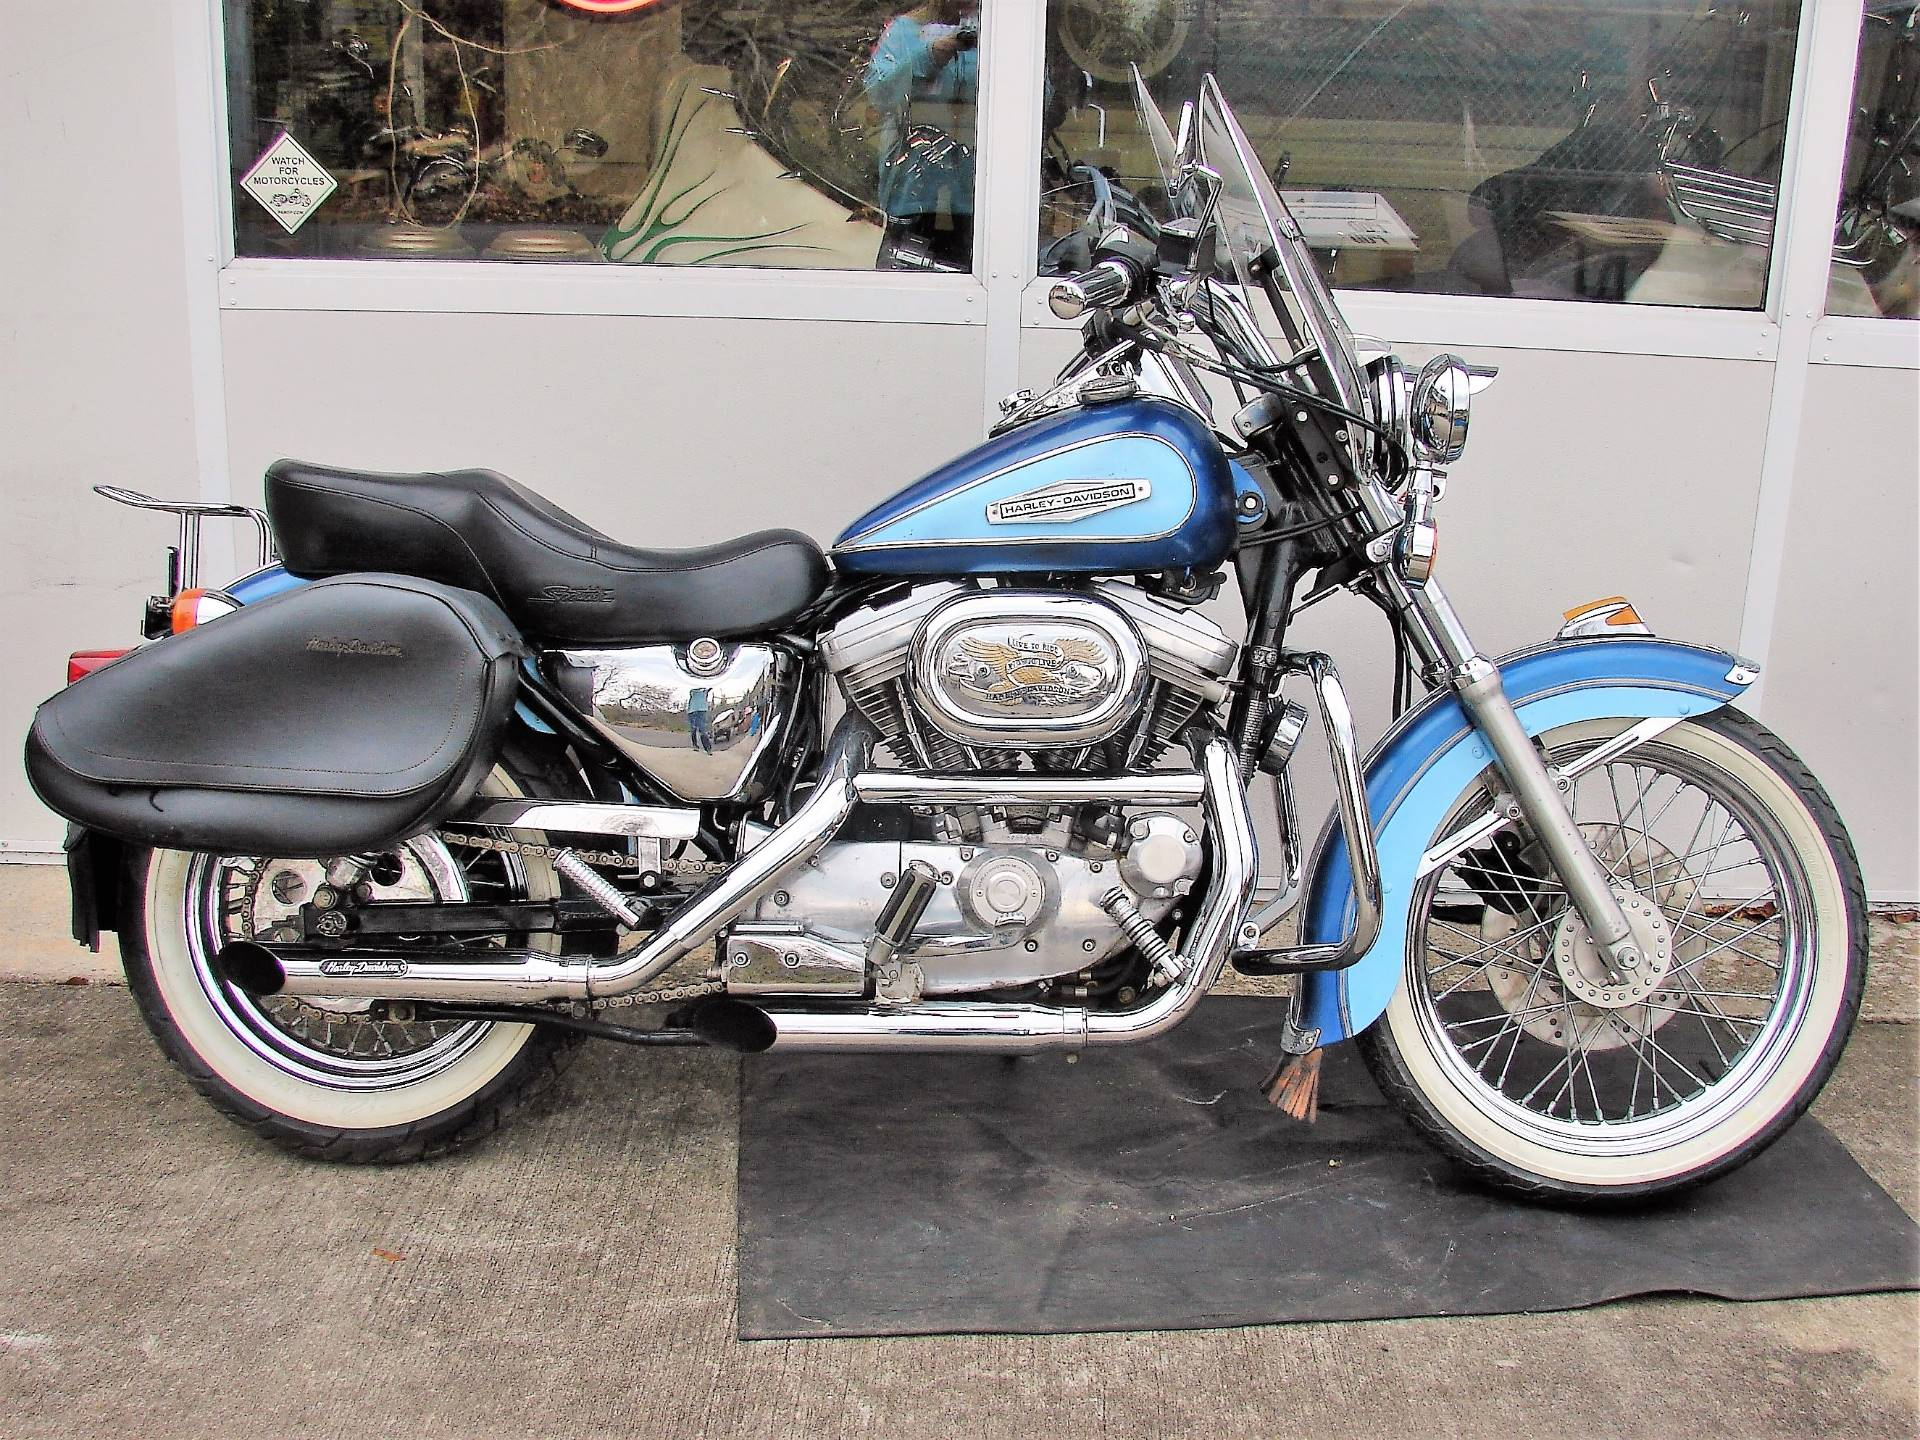 1989 Harley-Davidson XLH 883 Sportster (w/ Touring Conversion) in Williamstown, New Jersey - Photo 1